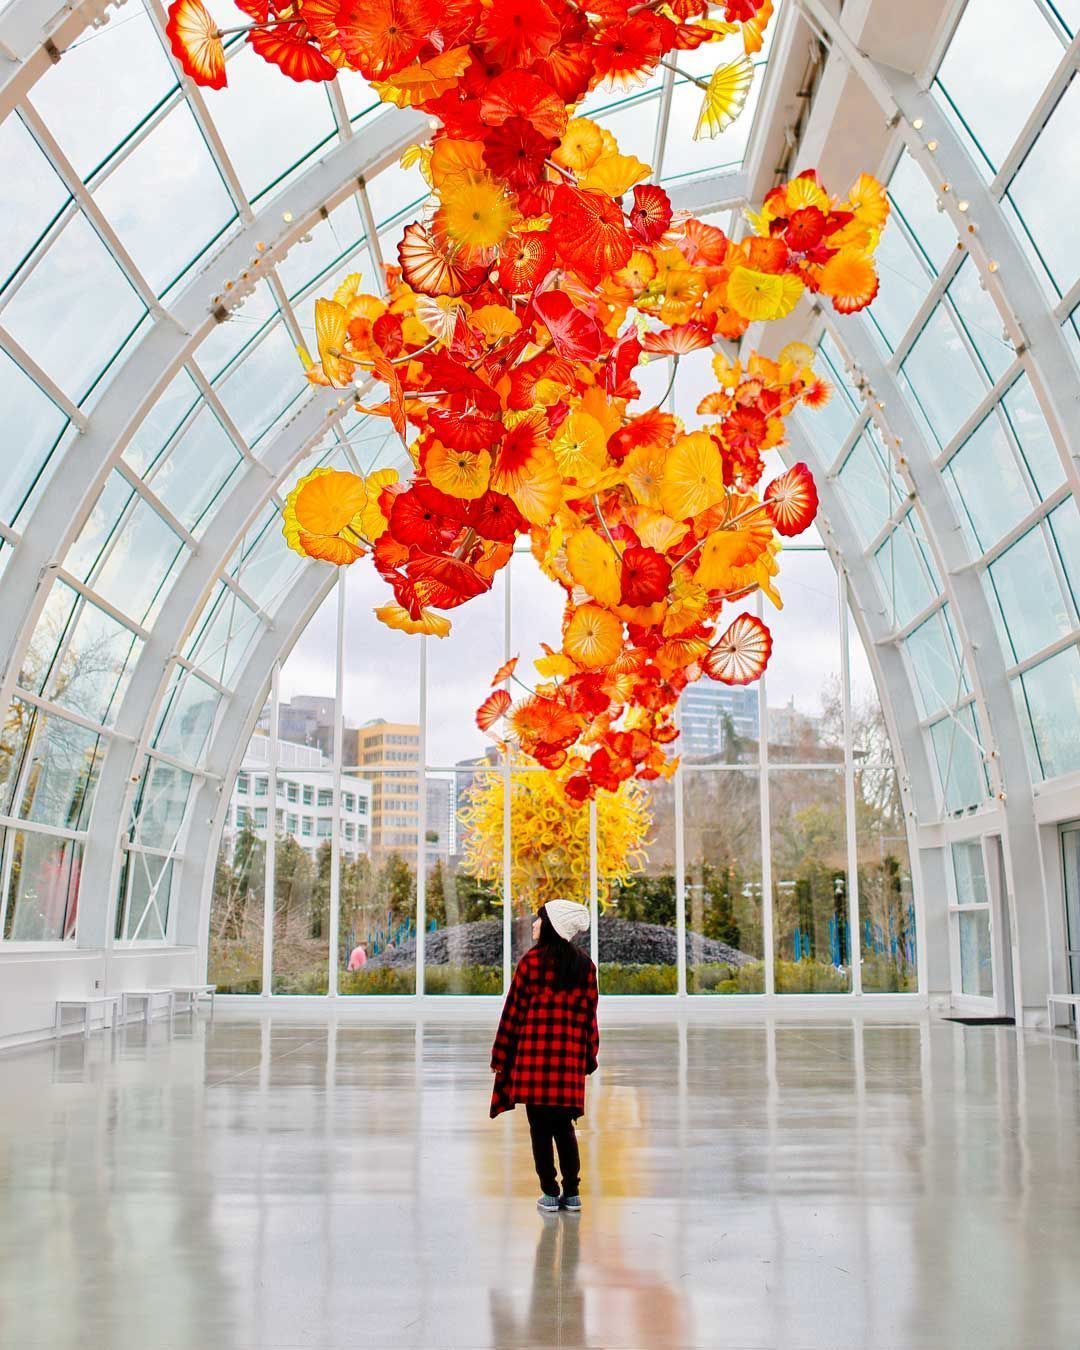 Chihuly Garden and Glass was our favorite museum to visit